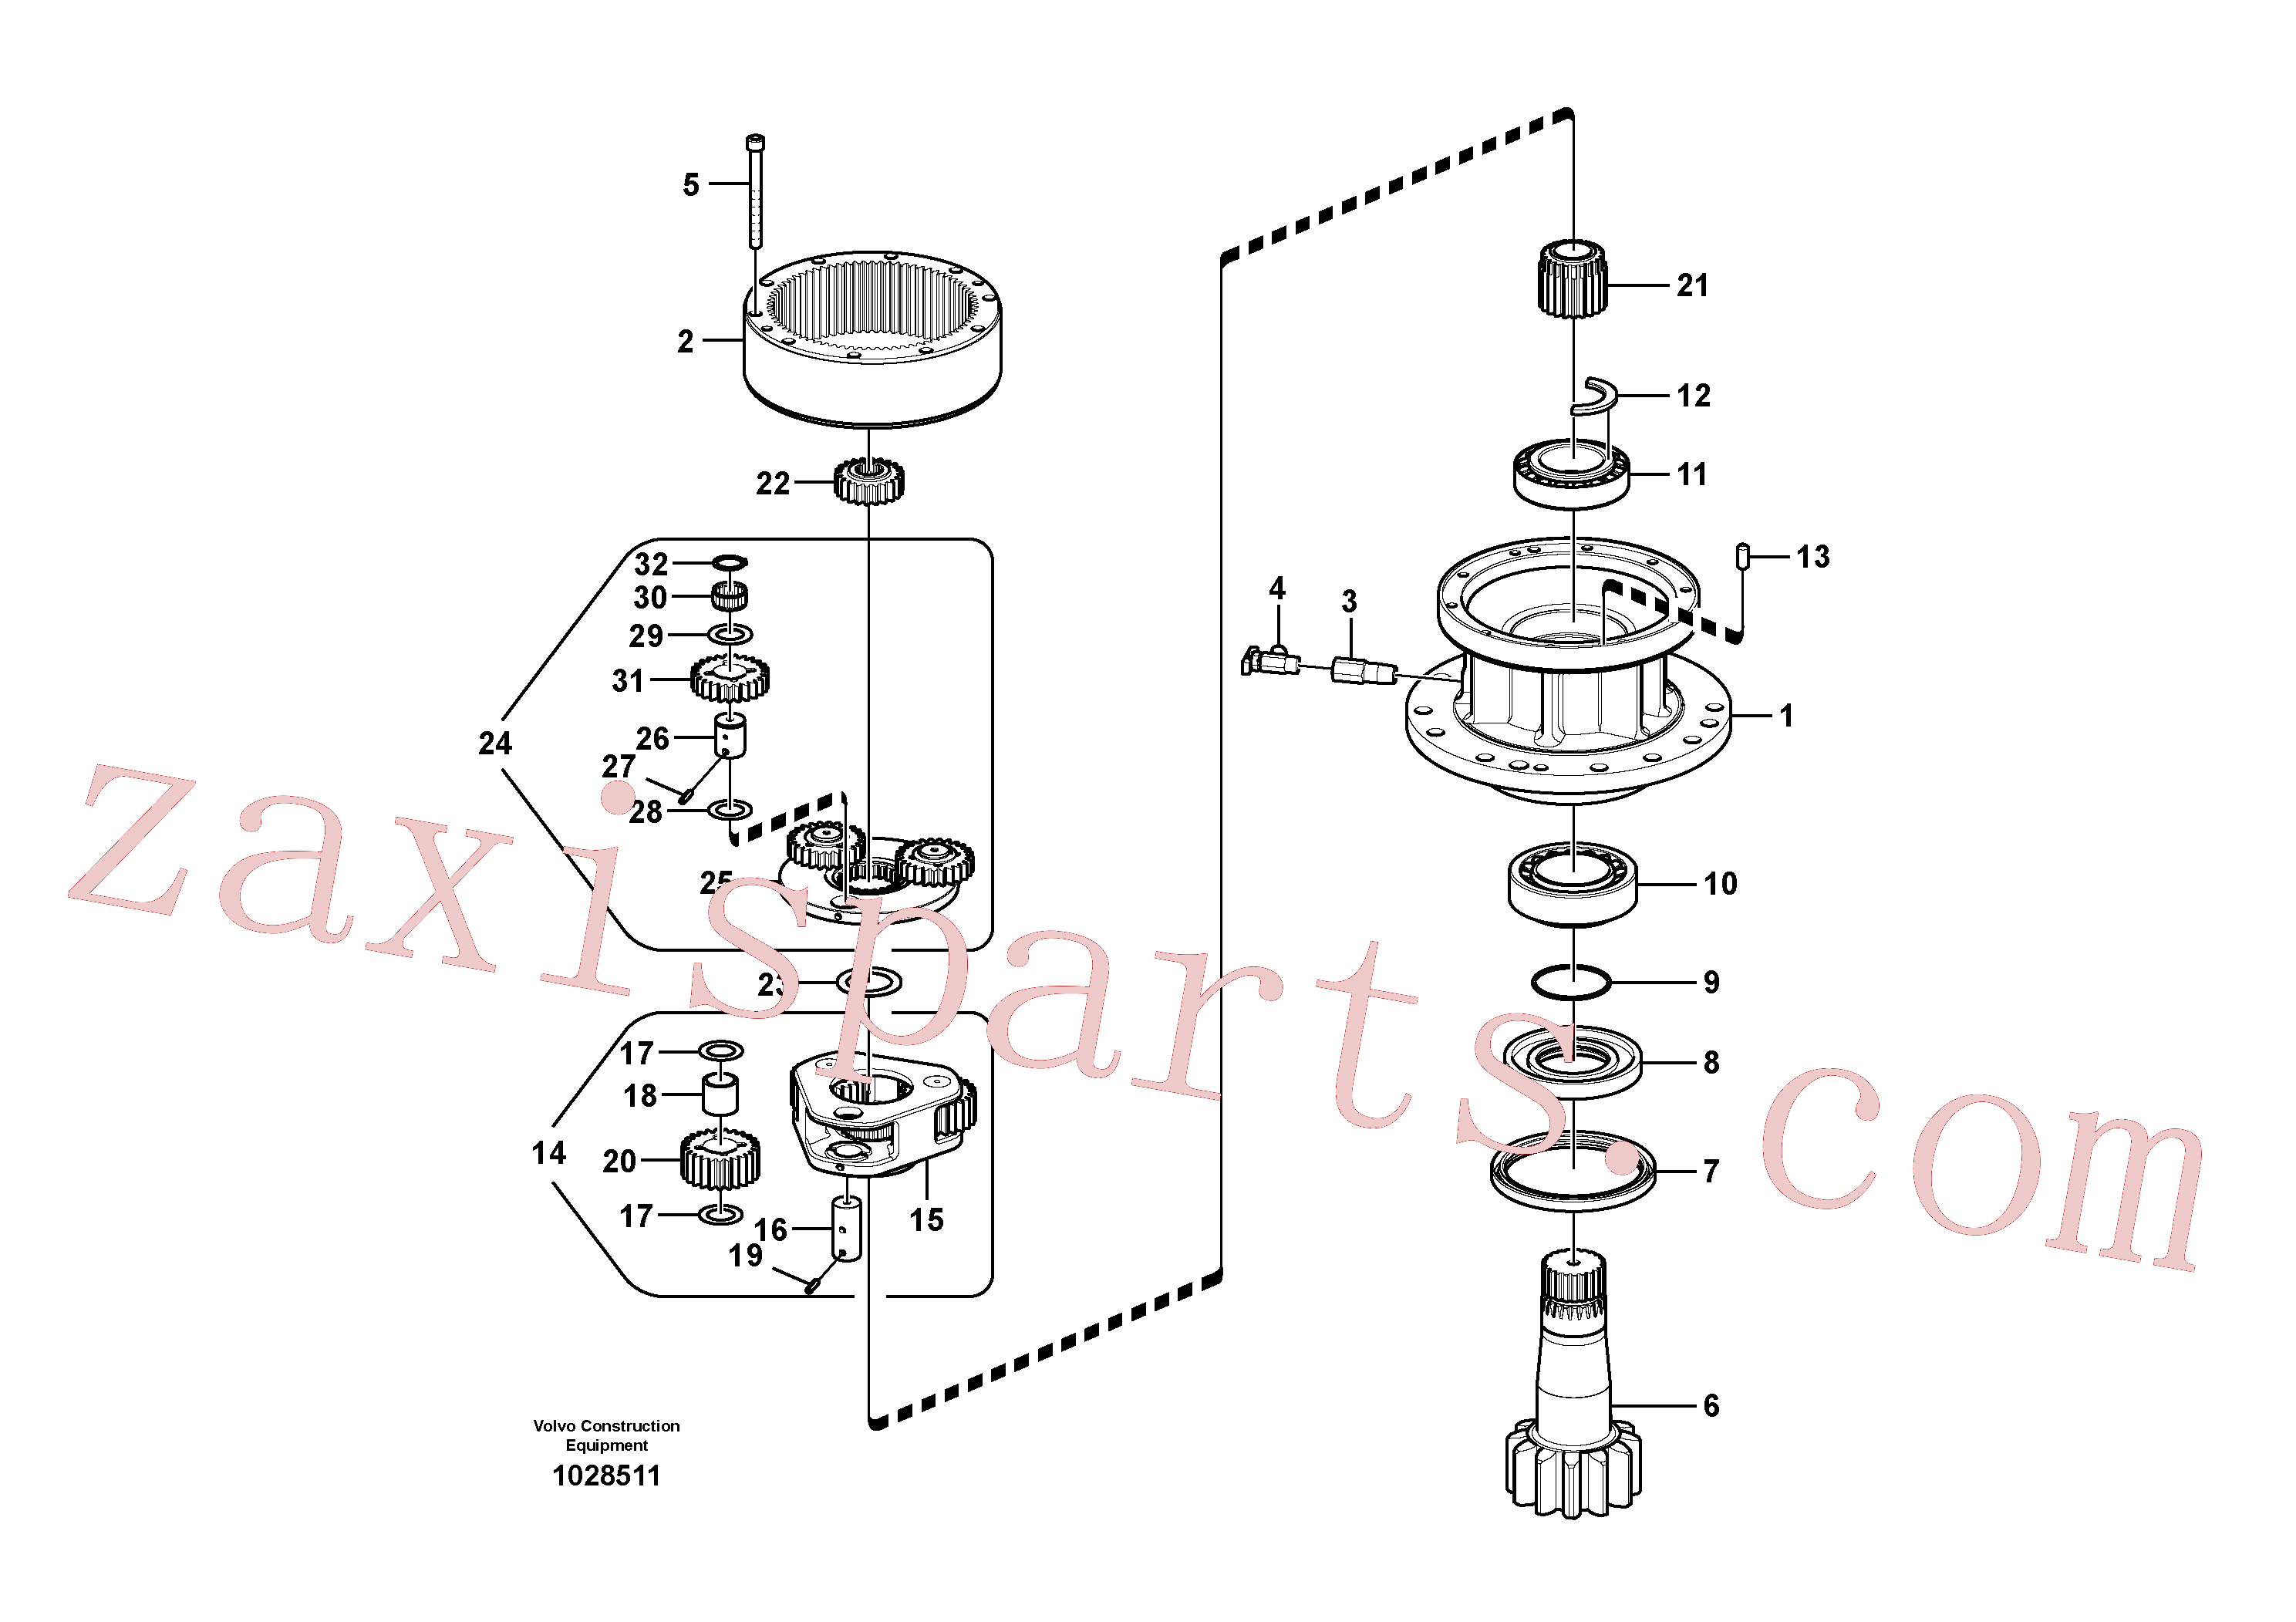 SA7118-23330 for Volvo Swing gearbox(1028511 assembly)